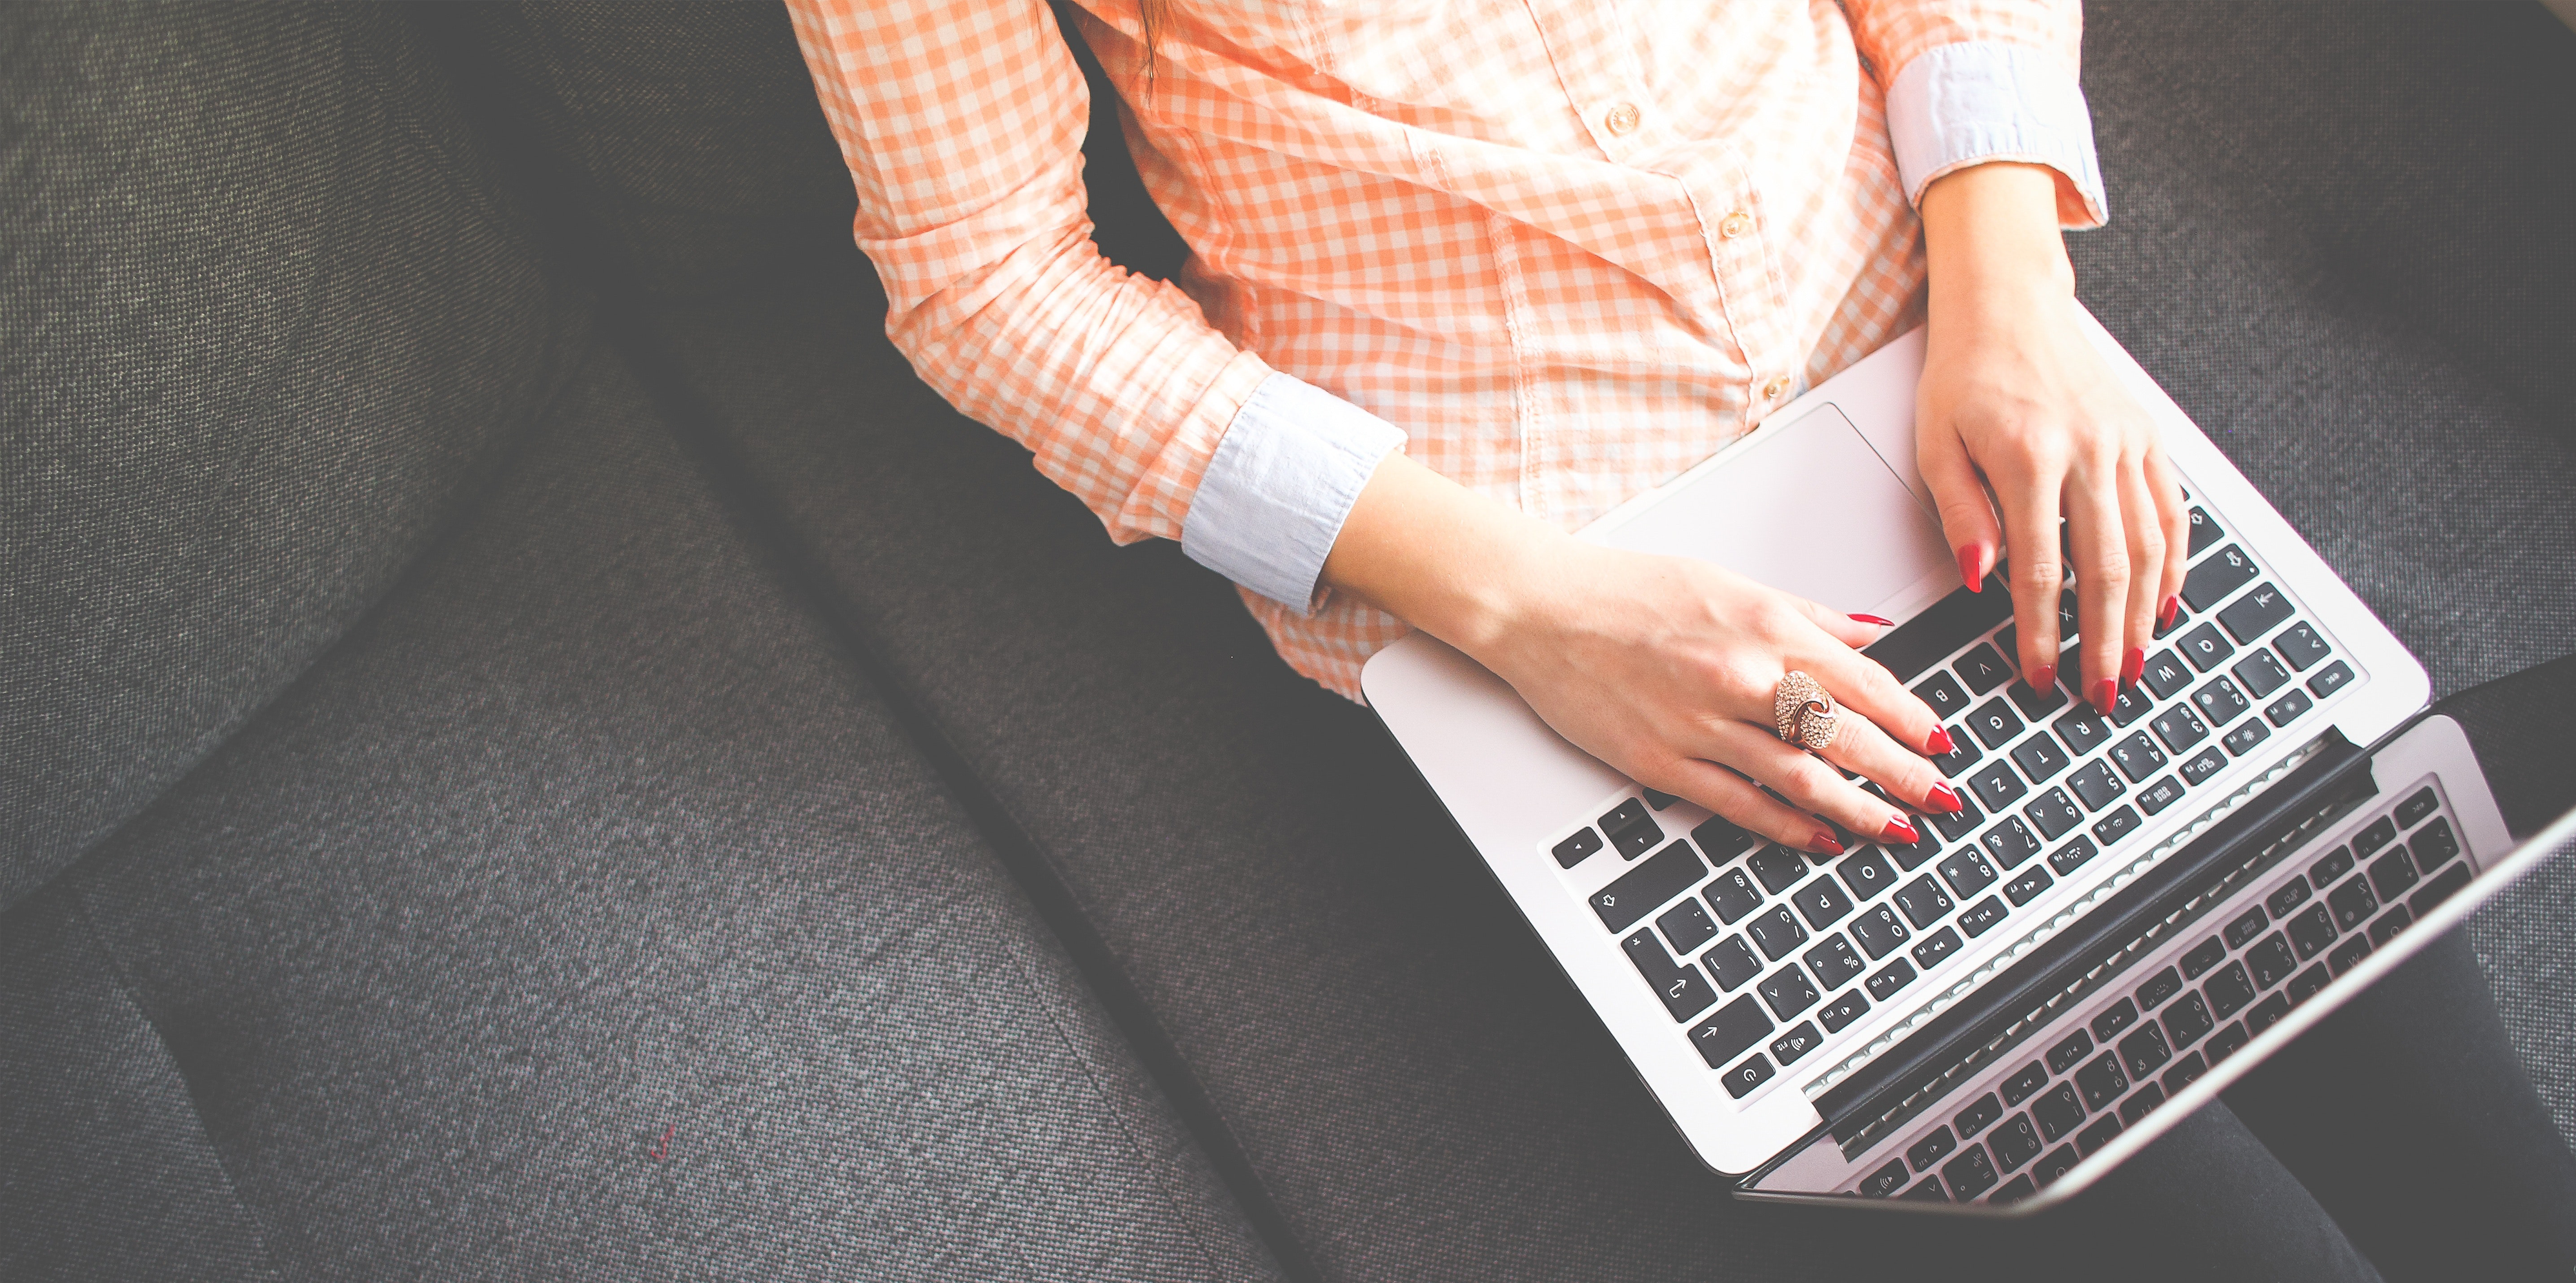 4 Reasons Why Blogging is Important For B2B